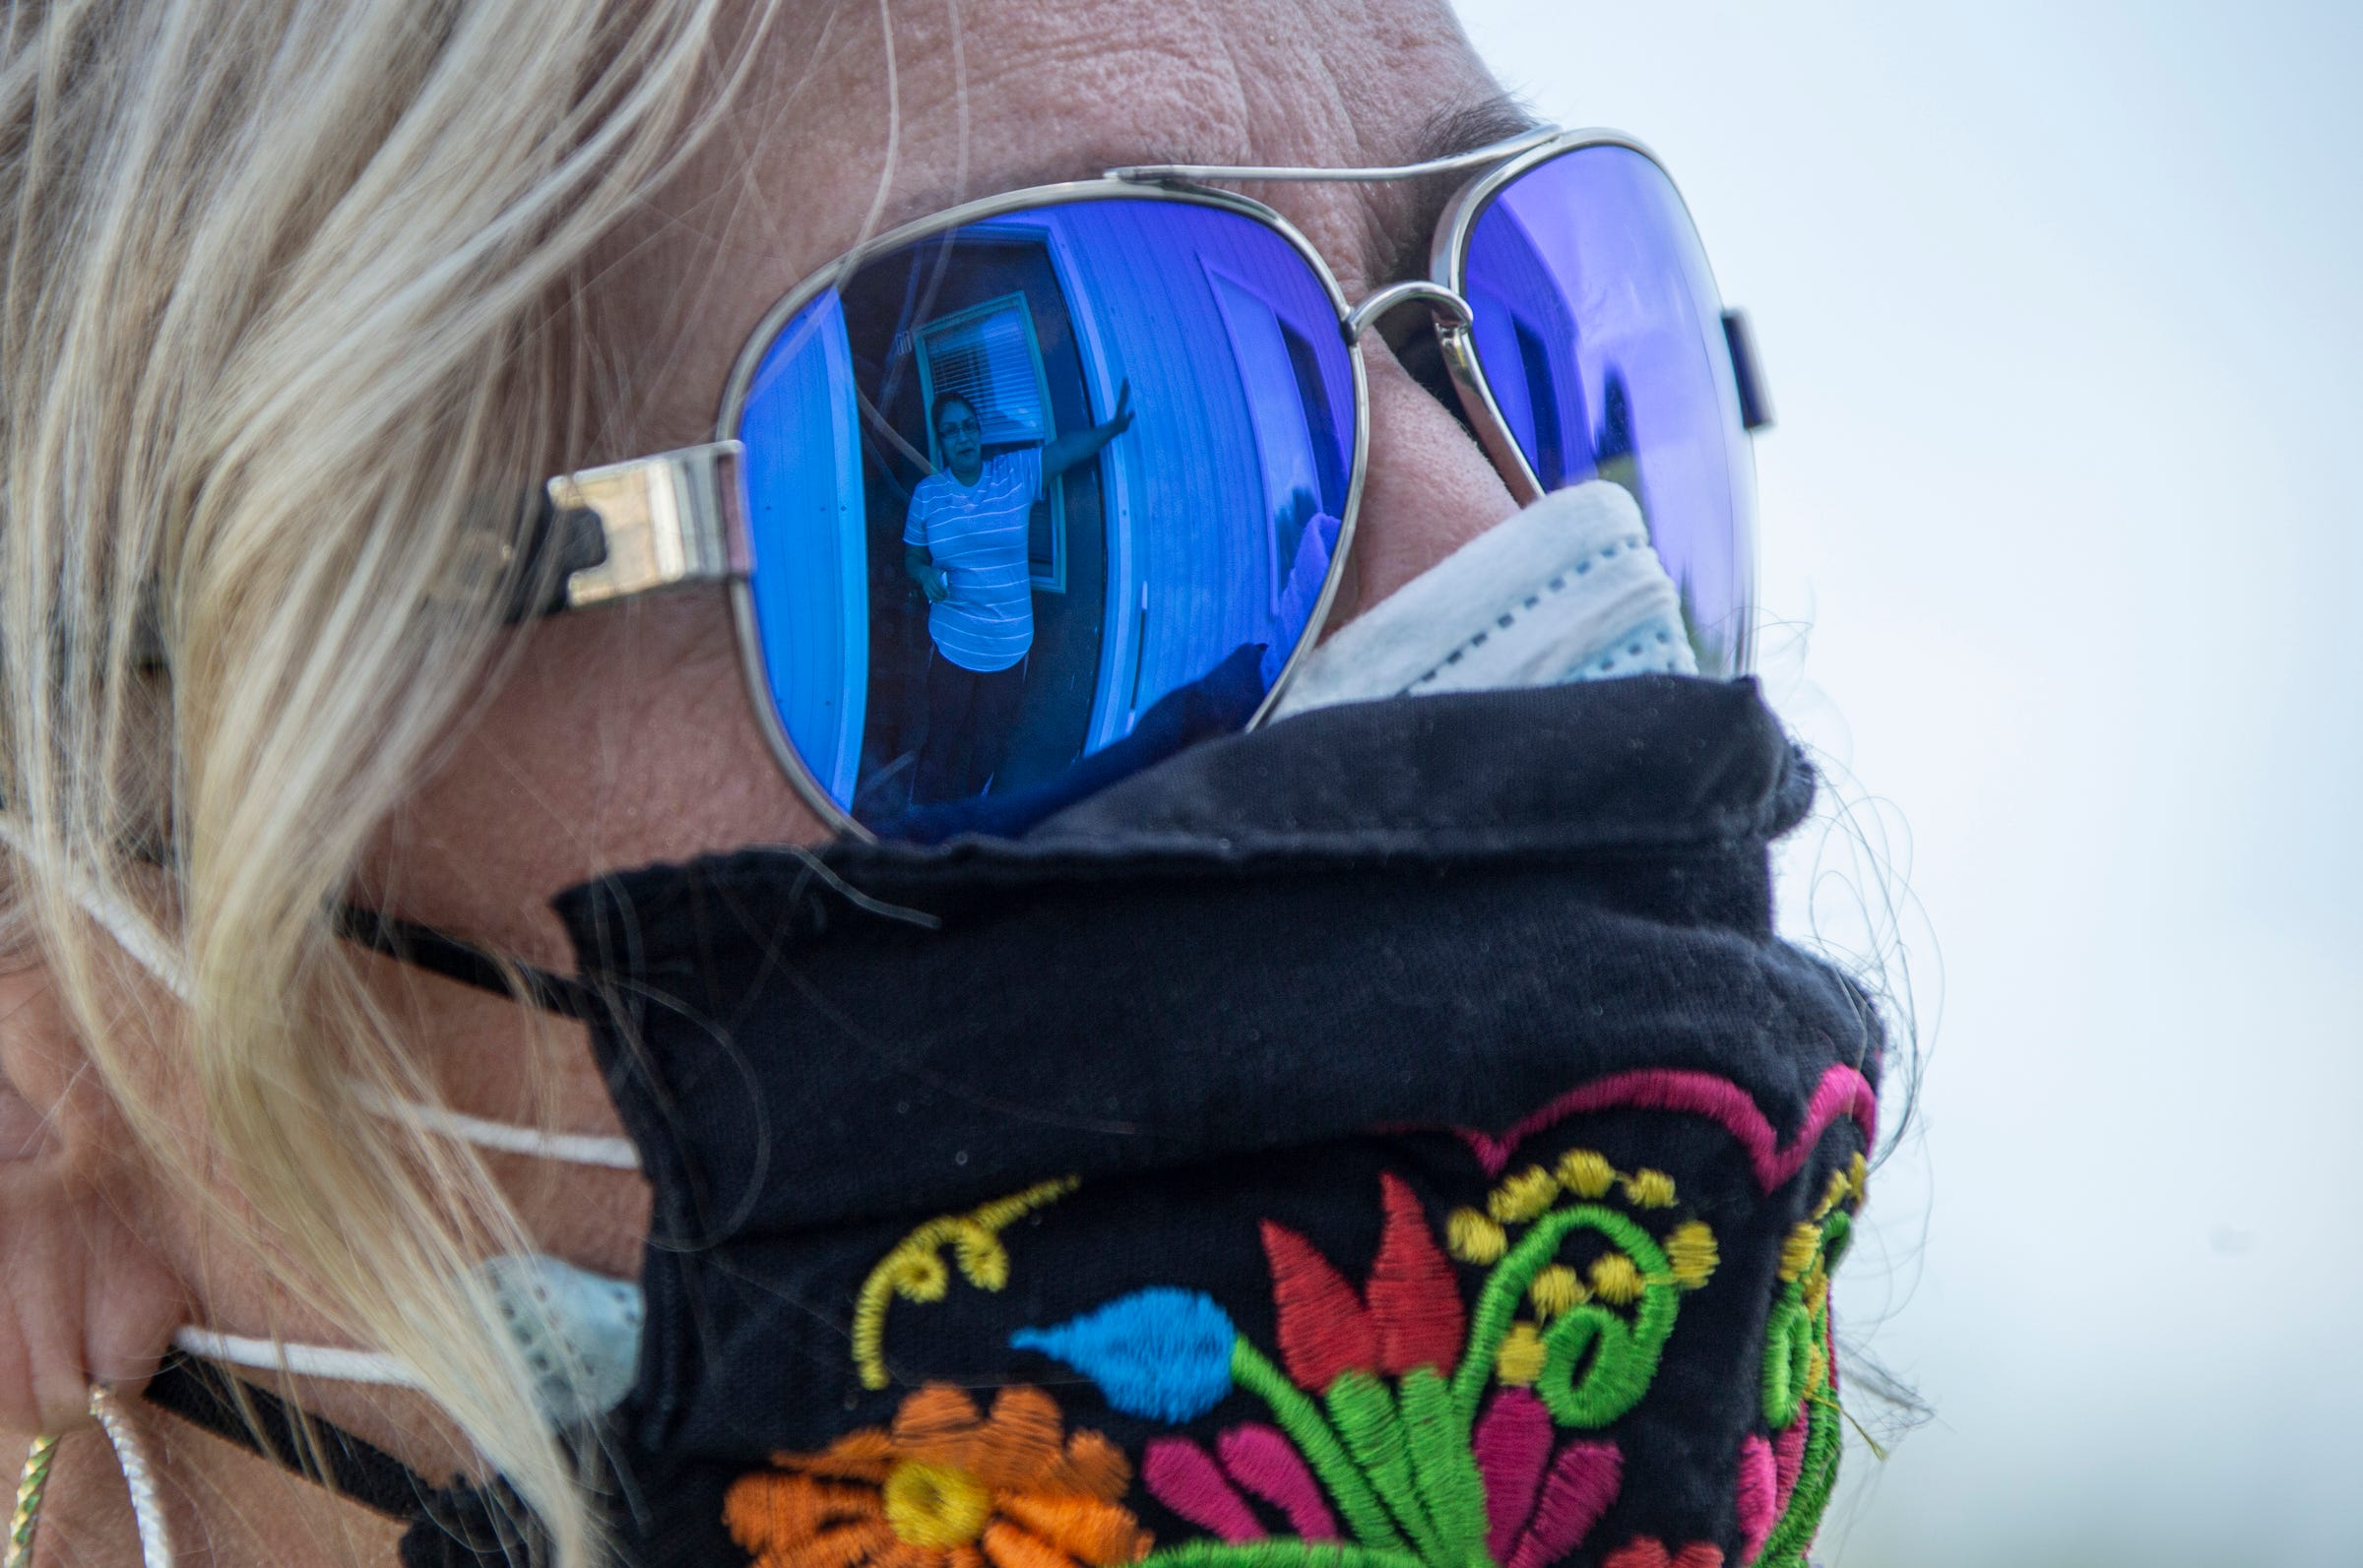 Brenda Martinez, 32, the wife of a farmworker, is reflected in the sunglasses of Migrant Legal Aid Executive Director Teresa Hendricks on Monday, Aug. 31, 2020 as Hendricks speaks to Martinez about COVID-19.